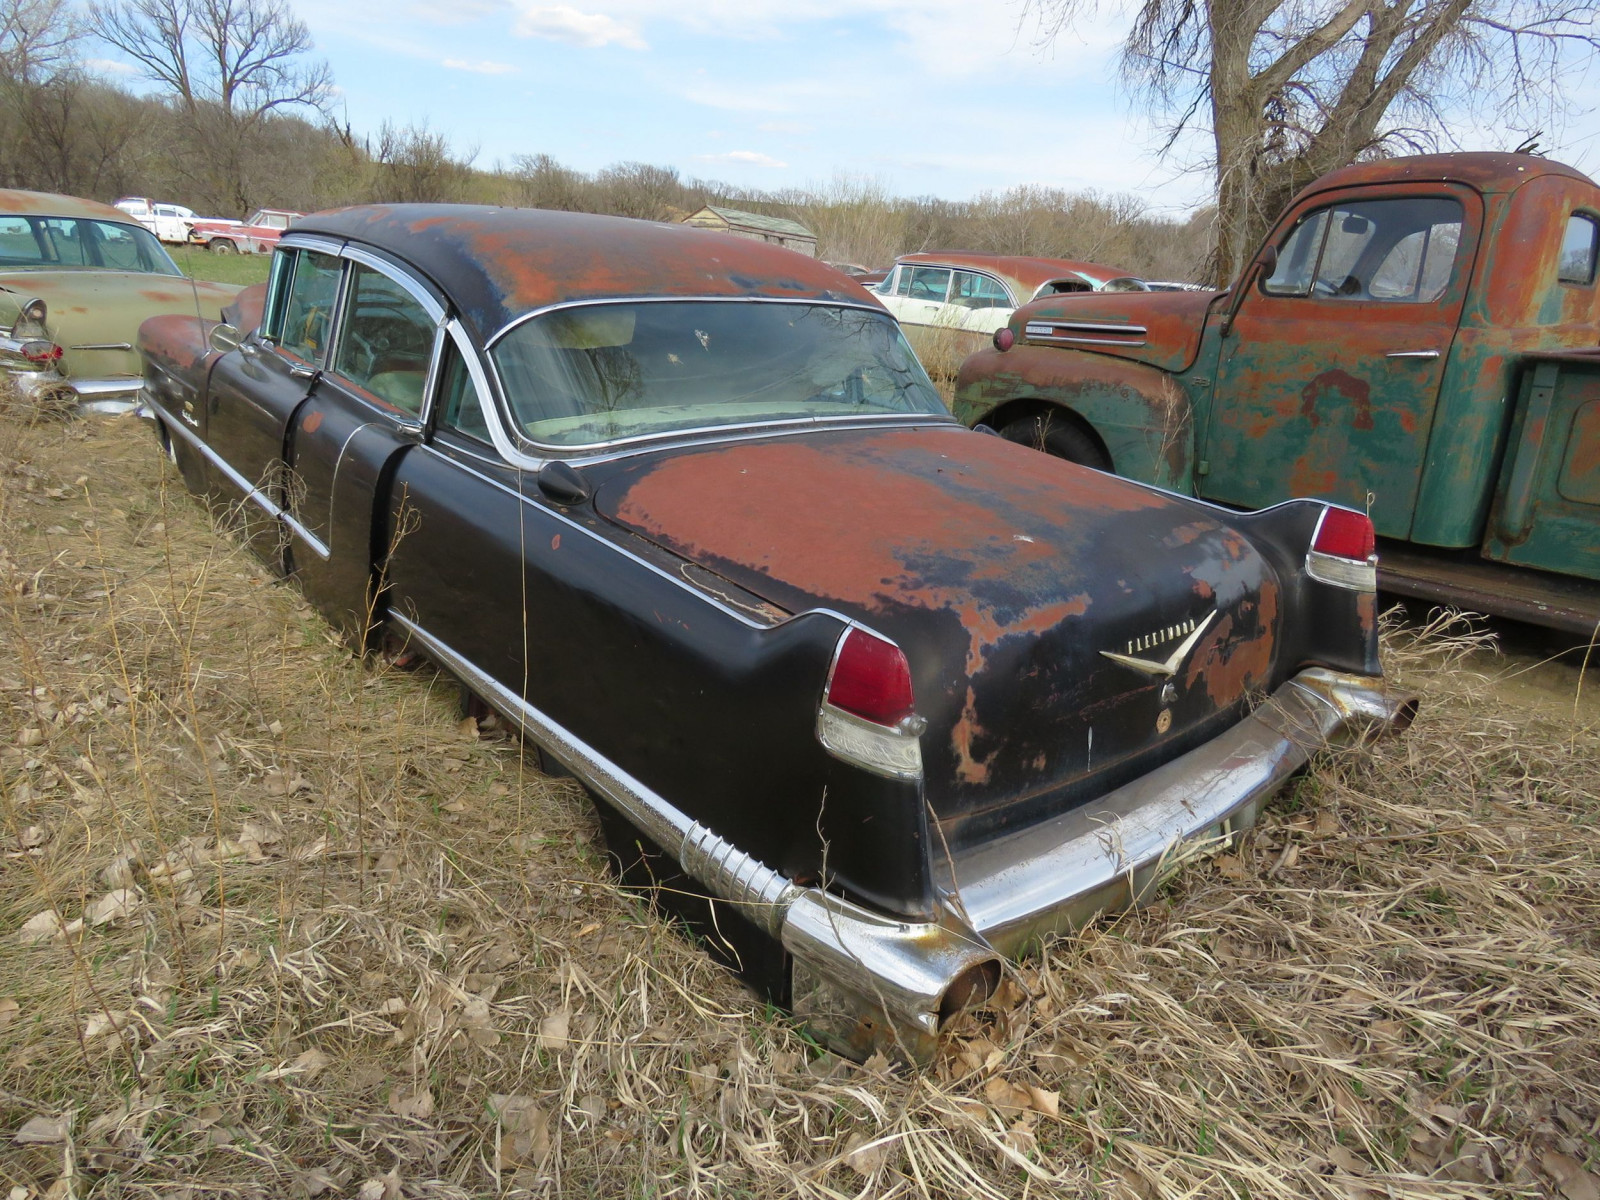 1956 Cadillac Fleetwood 4dr Sedan 5660119185 Sixty Special - Image 3